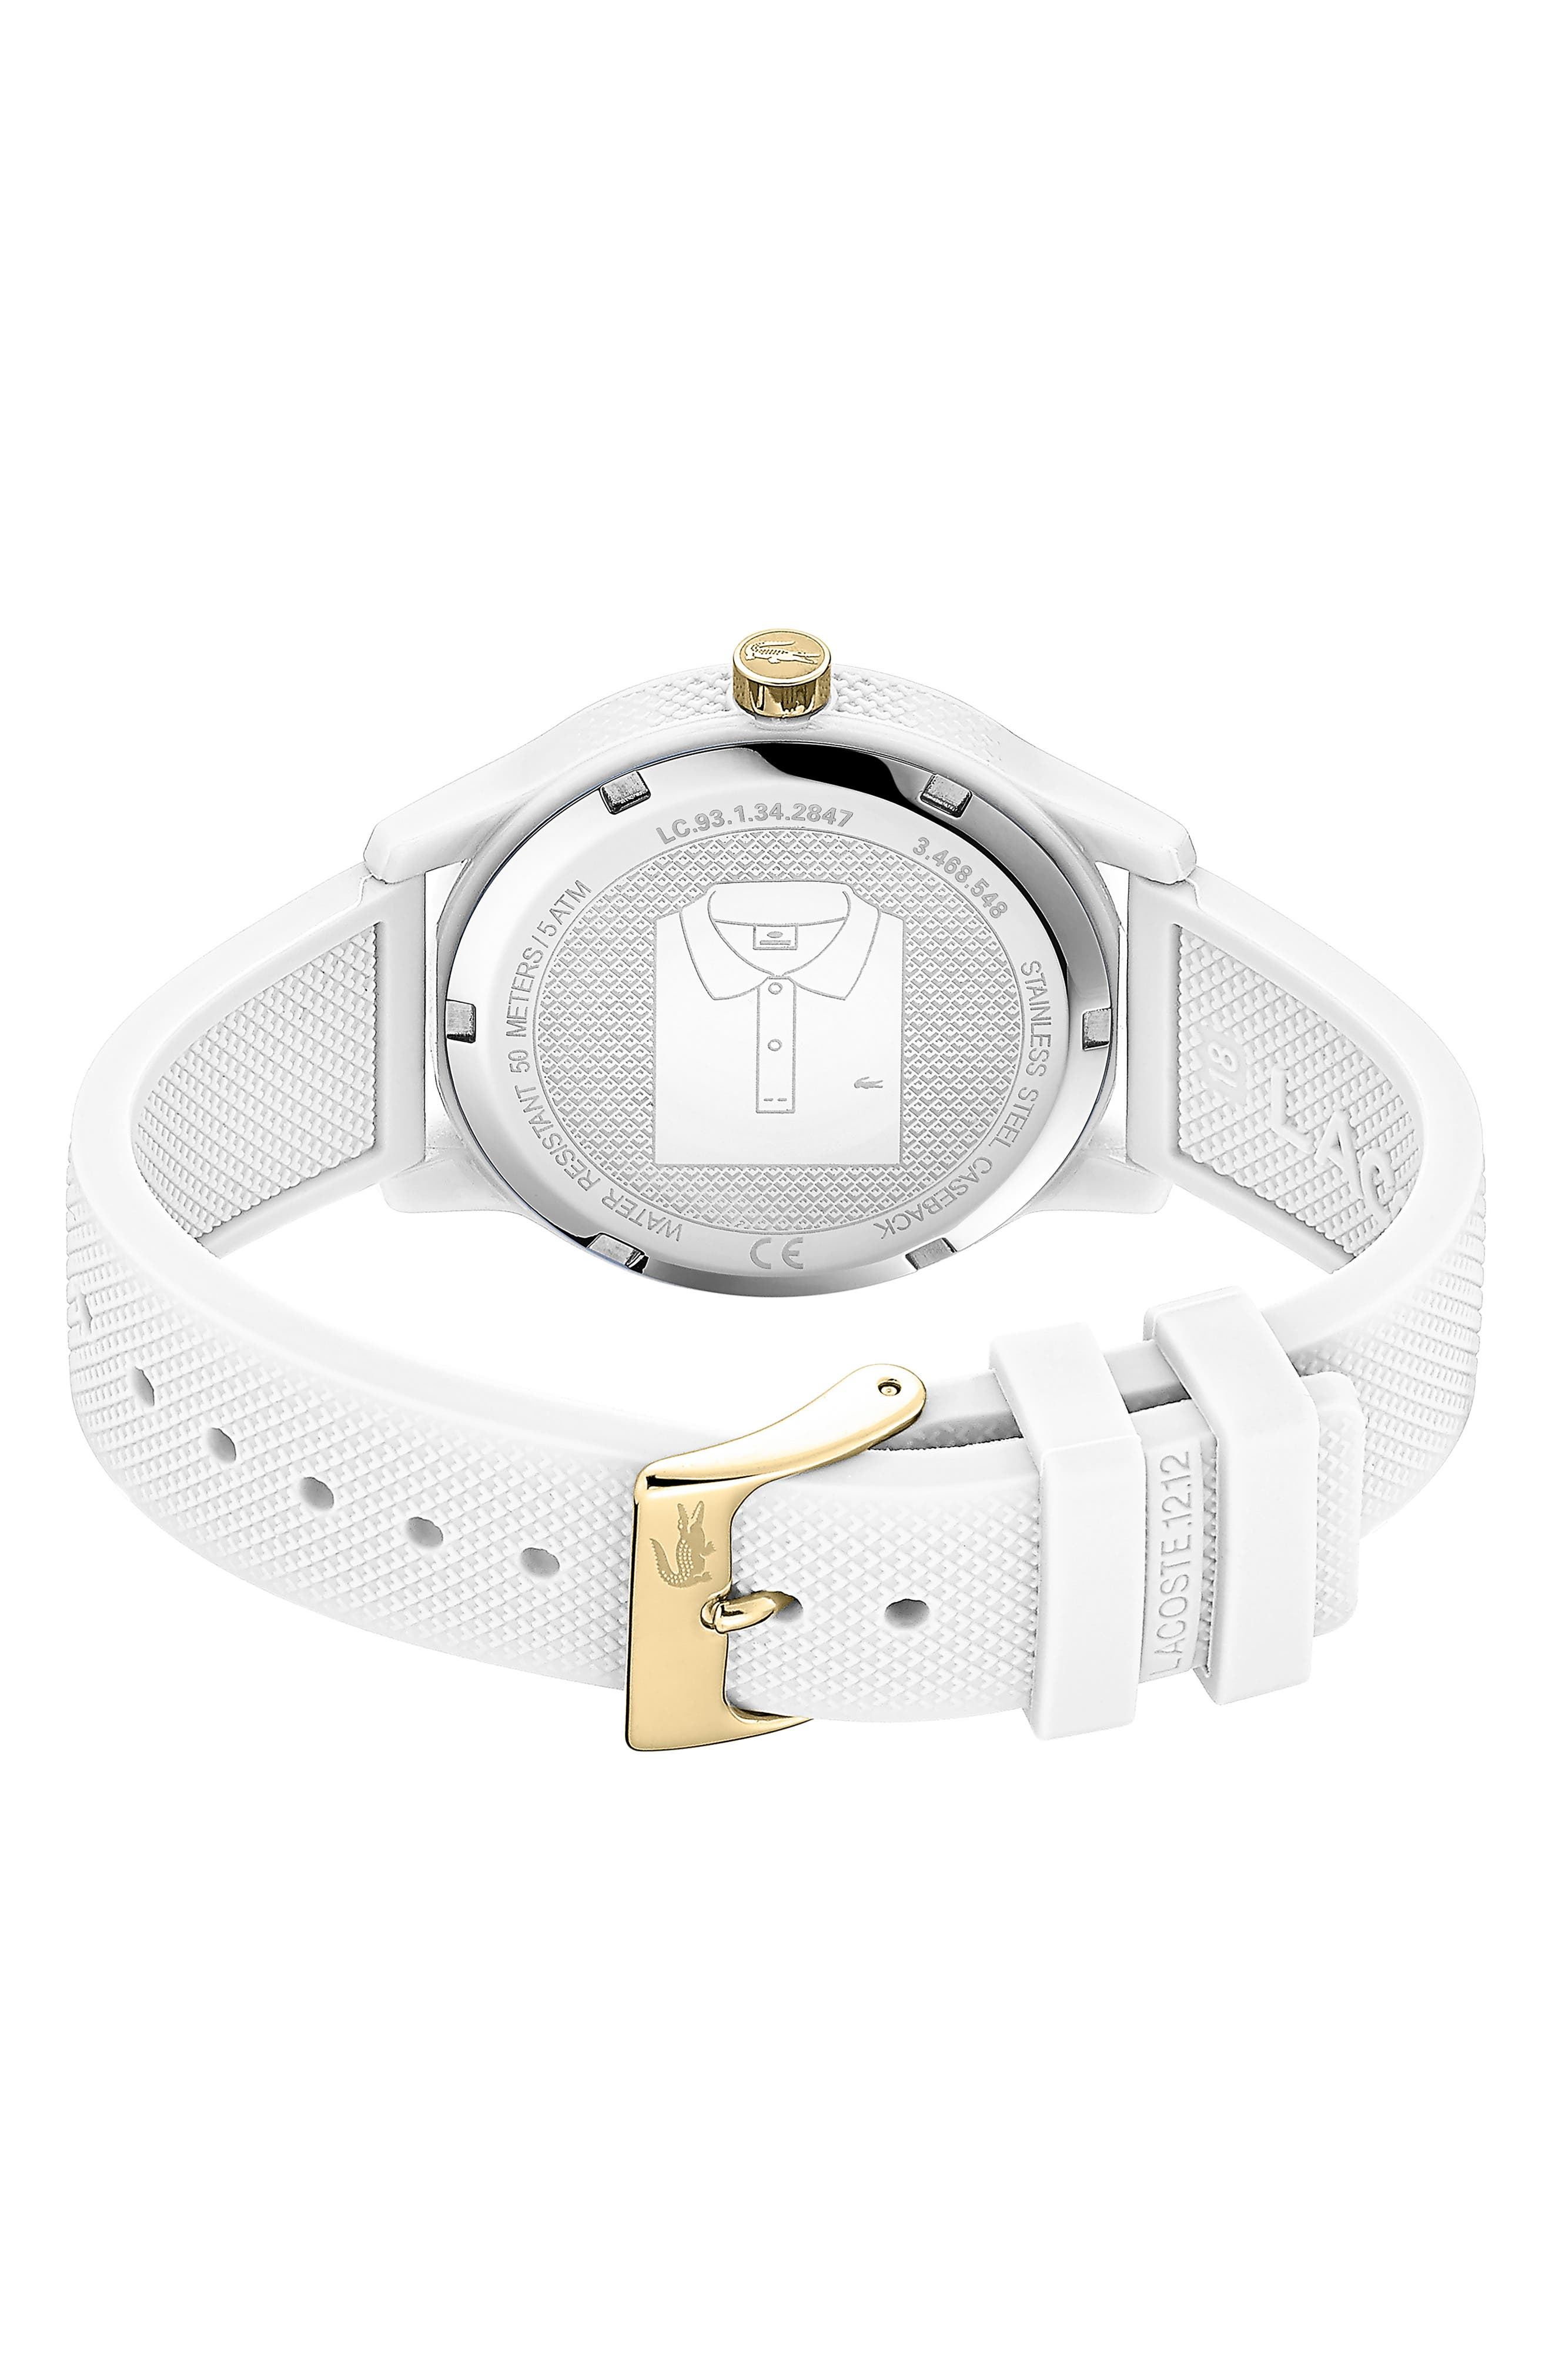 LACOSTE, 12.12 Silicone Strap Watch, 36mm, Alternate thumbnail 2, color, WHITE